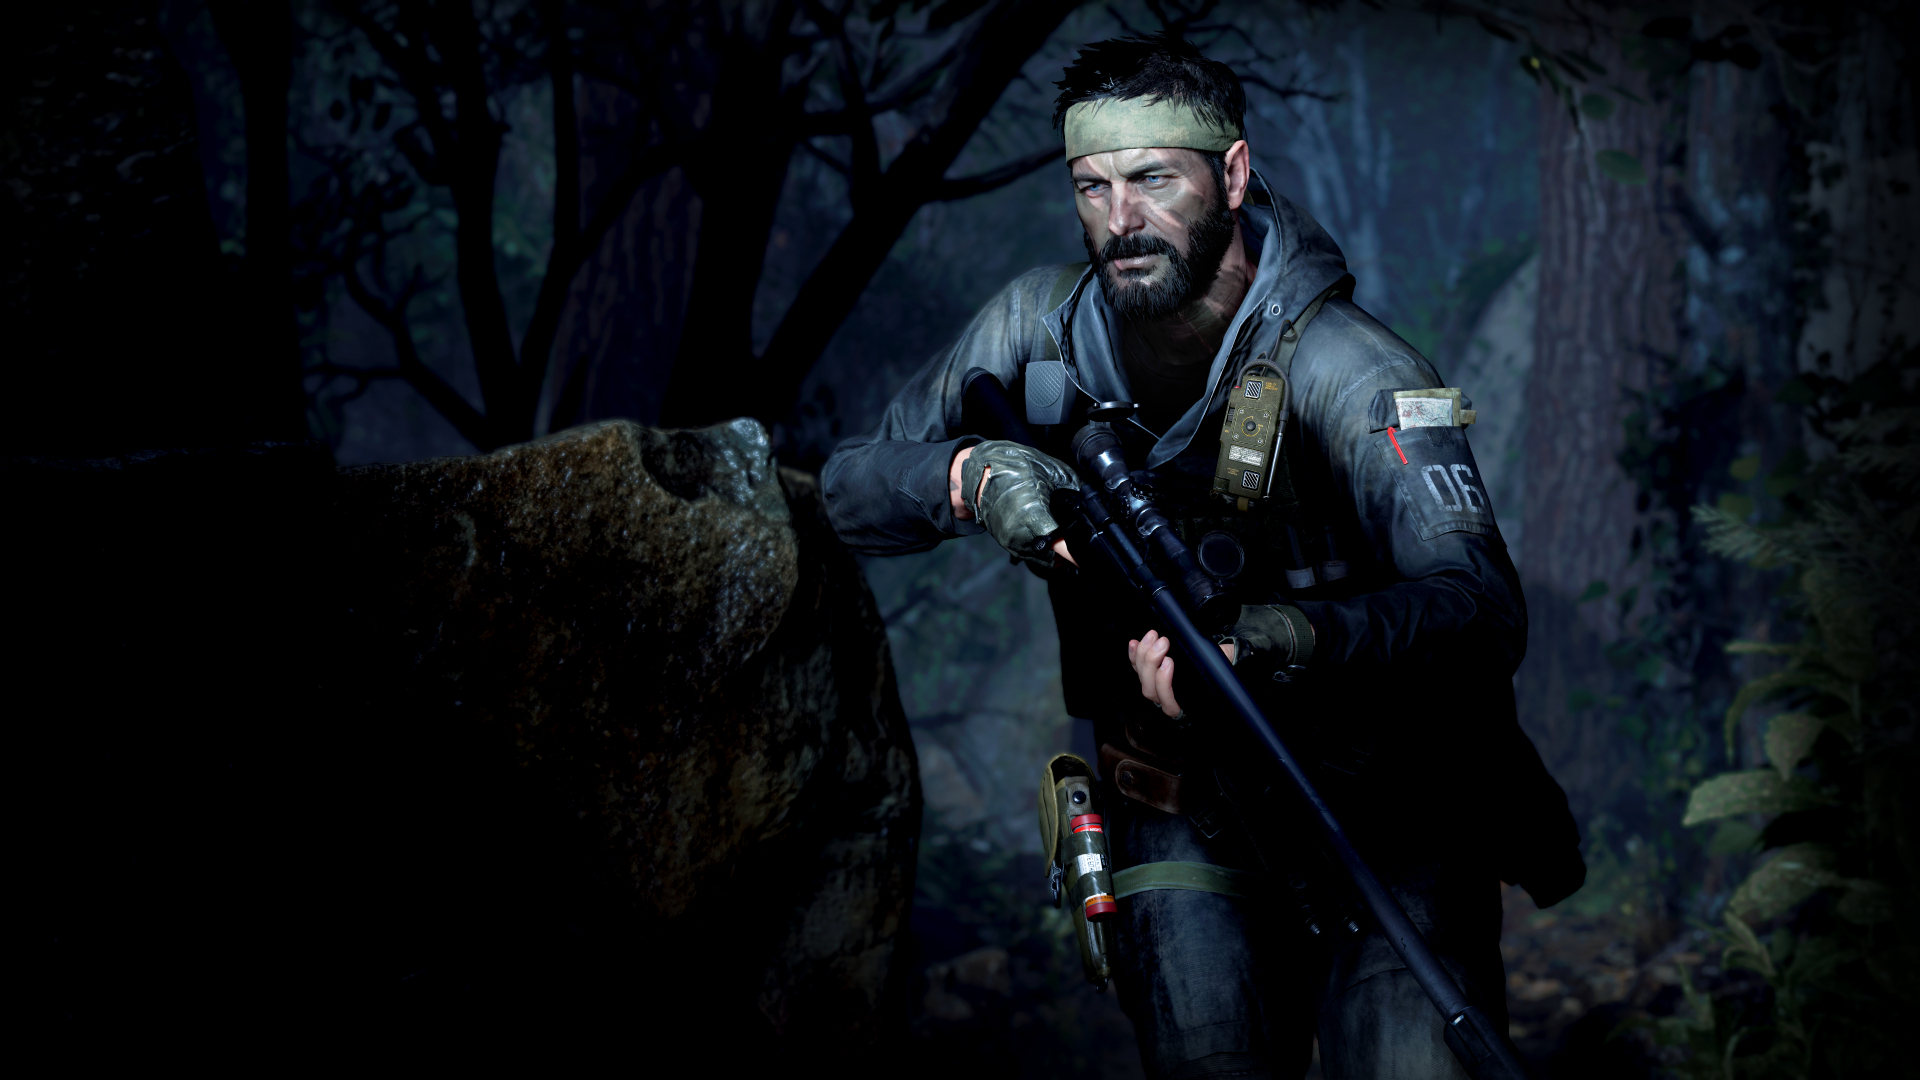 Call of Duty: Black Ops - Cold War campaign gets a 'non-binary' gender option in response to early criticism